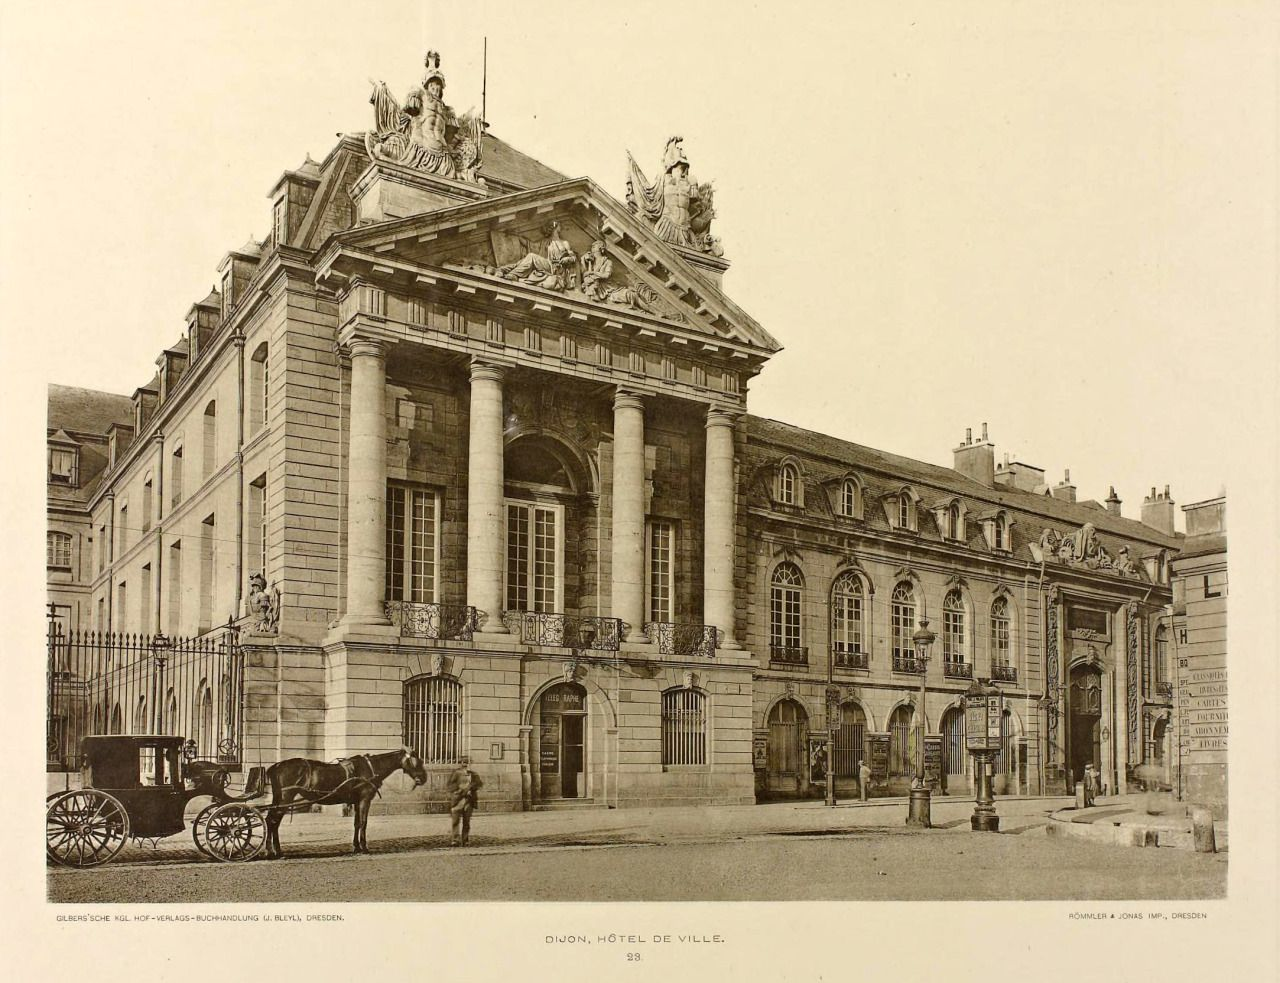 The City Hall, Dijon